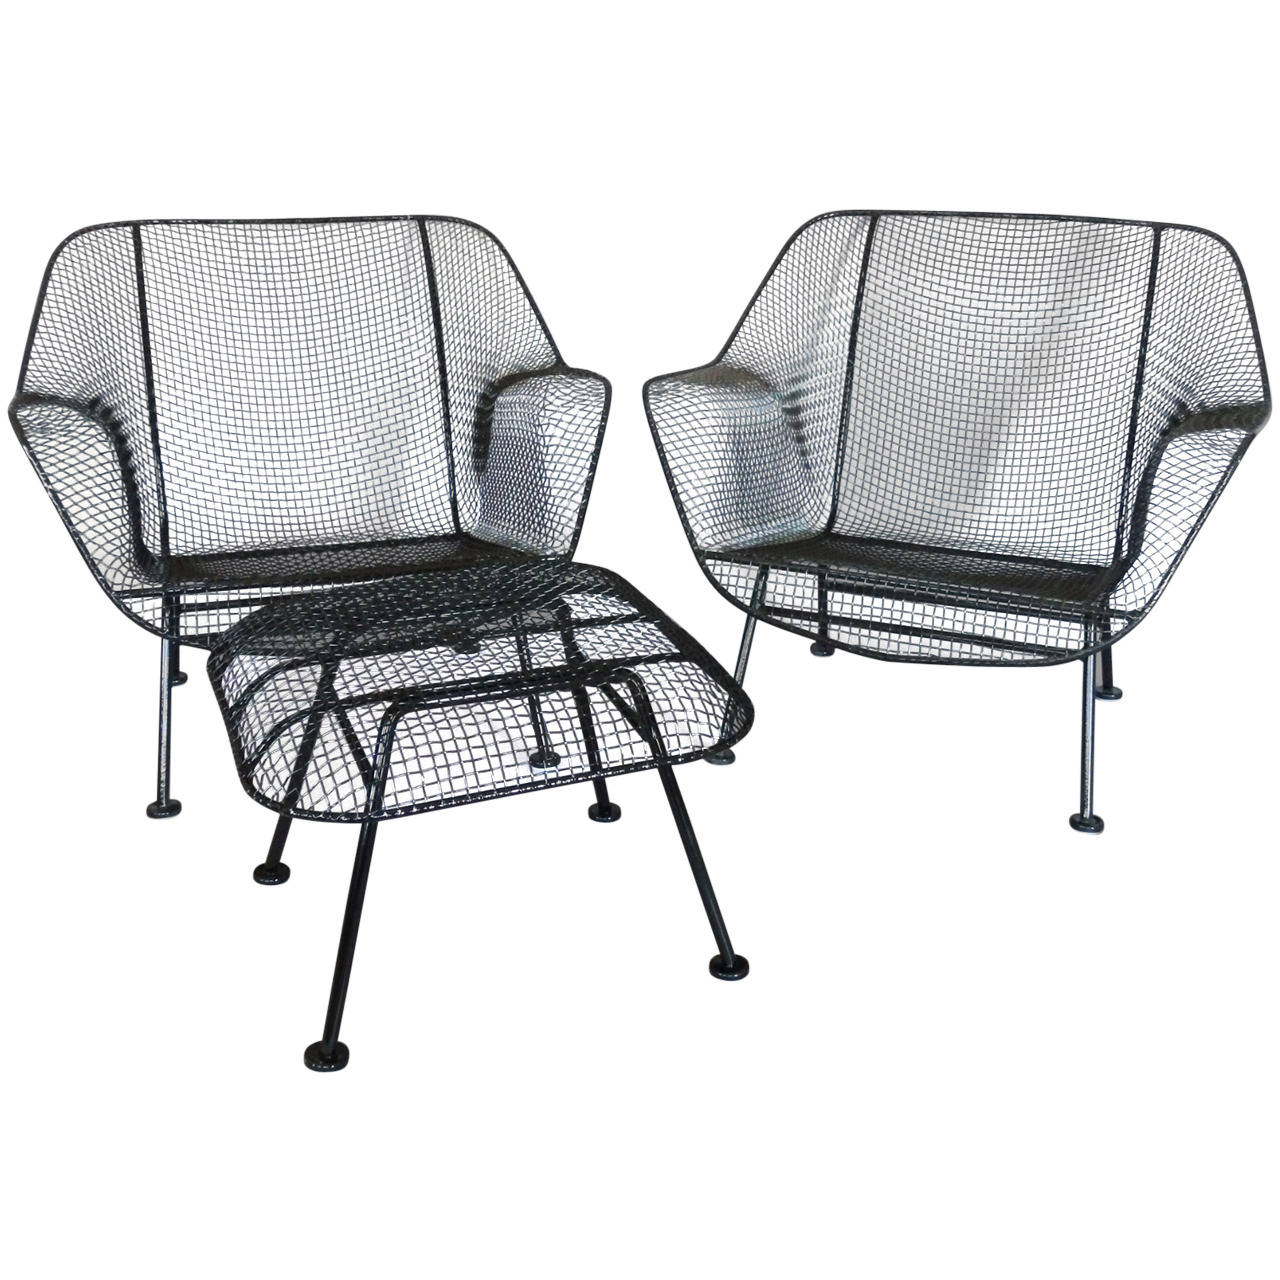 pair of woodard wrought iron with mesh lounge chairs at 1stdibs. Black Bedroom Furniture Sets. Home Design Ideas